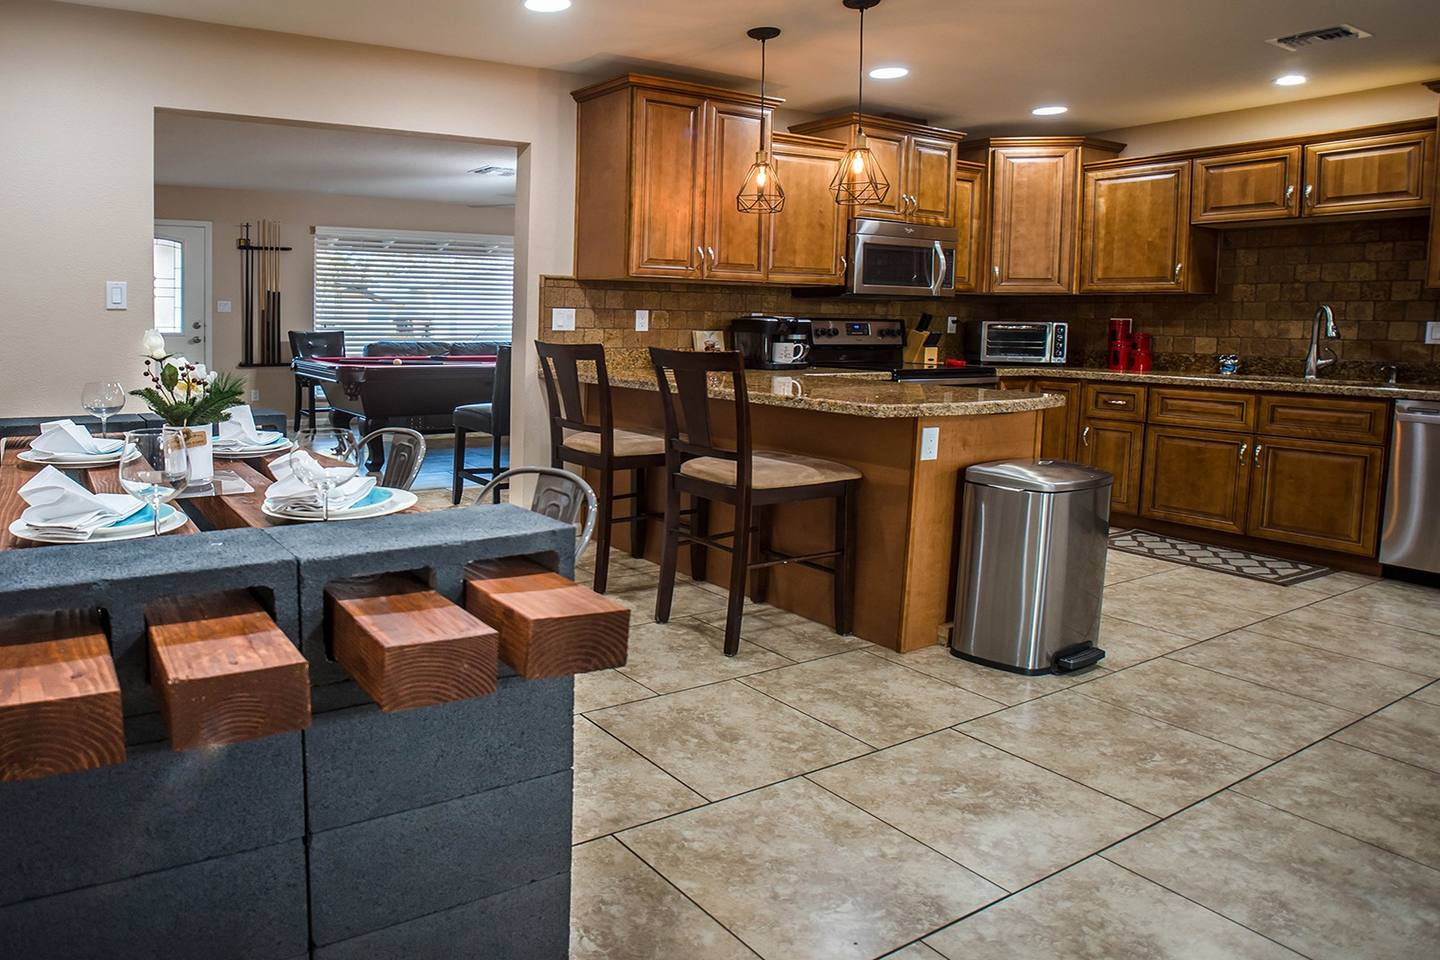 7819 Kitchen View.jpg